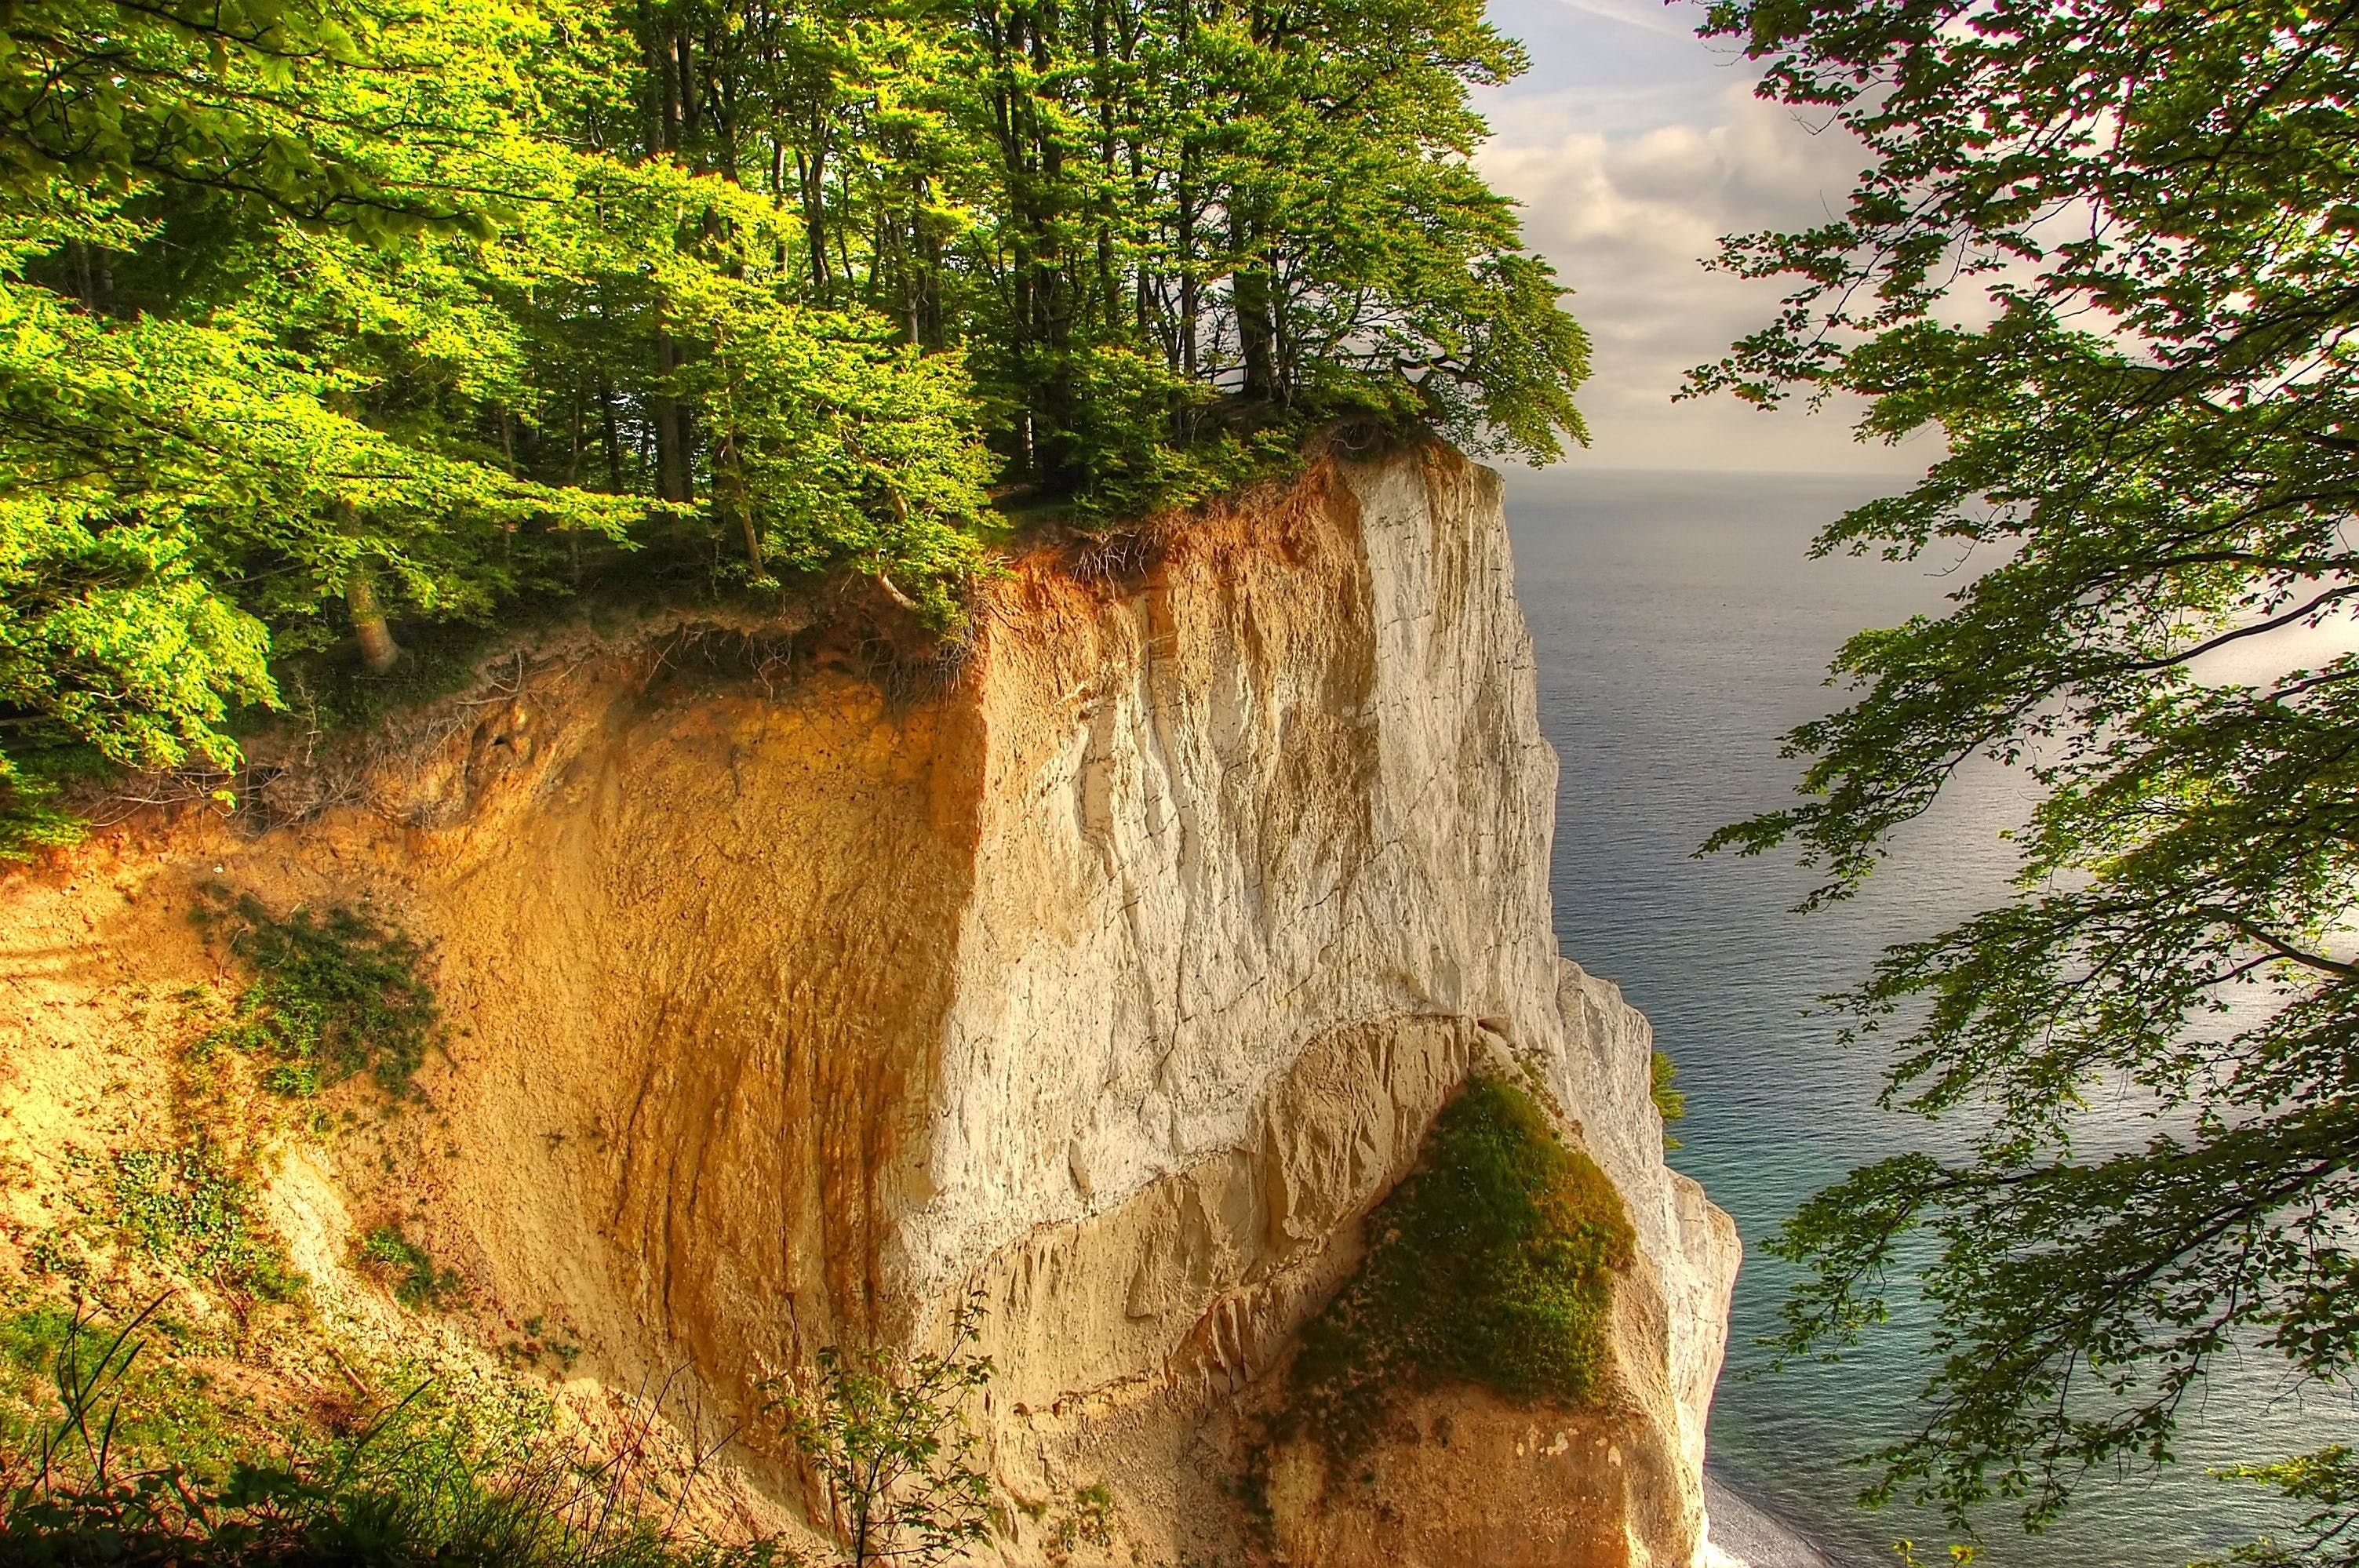 Landscape Photography of Tall Trees on Cliff